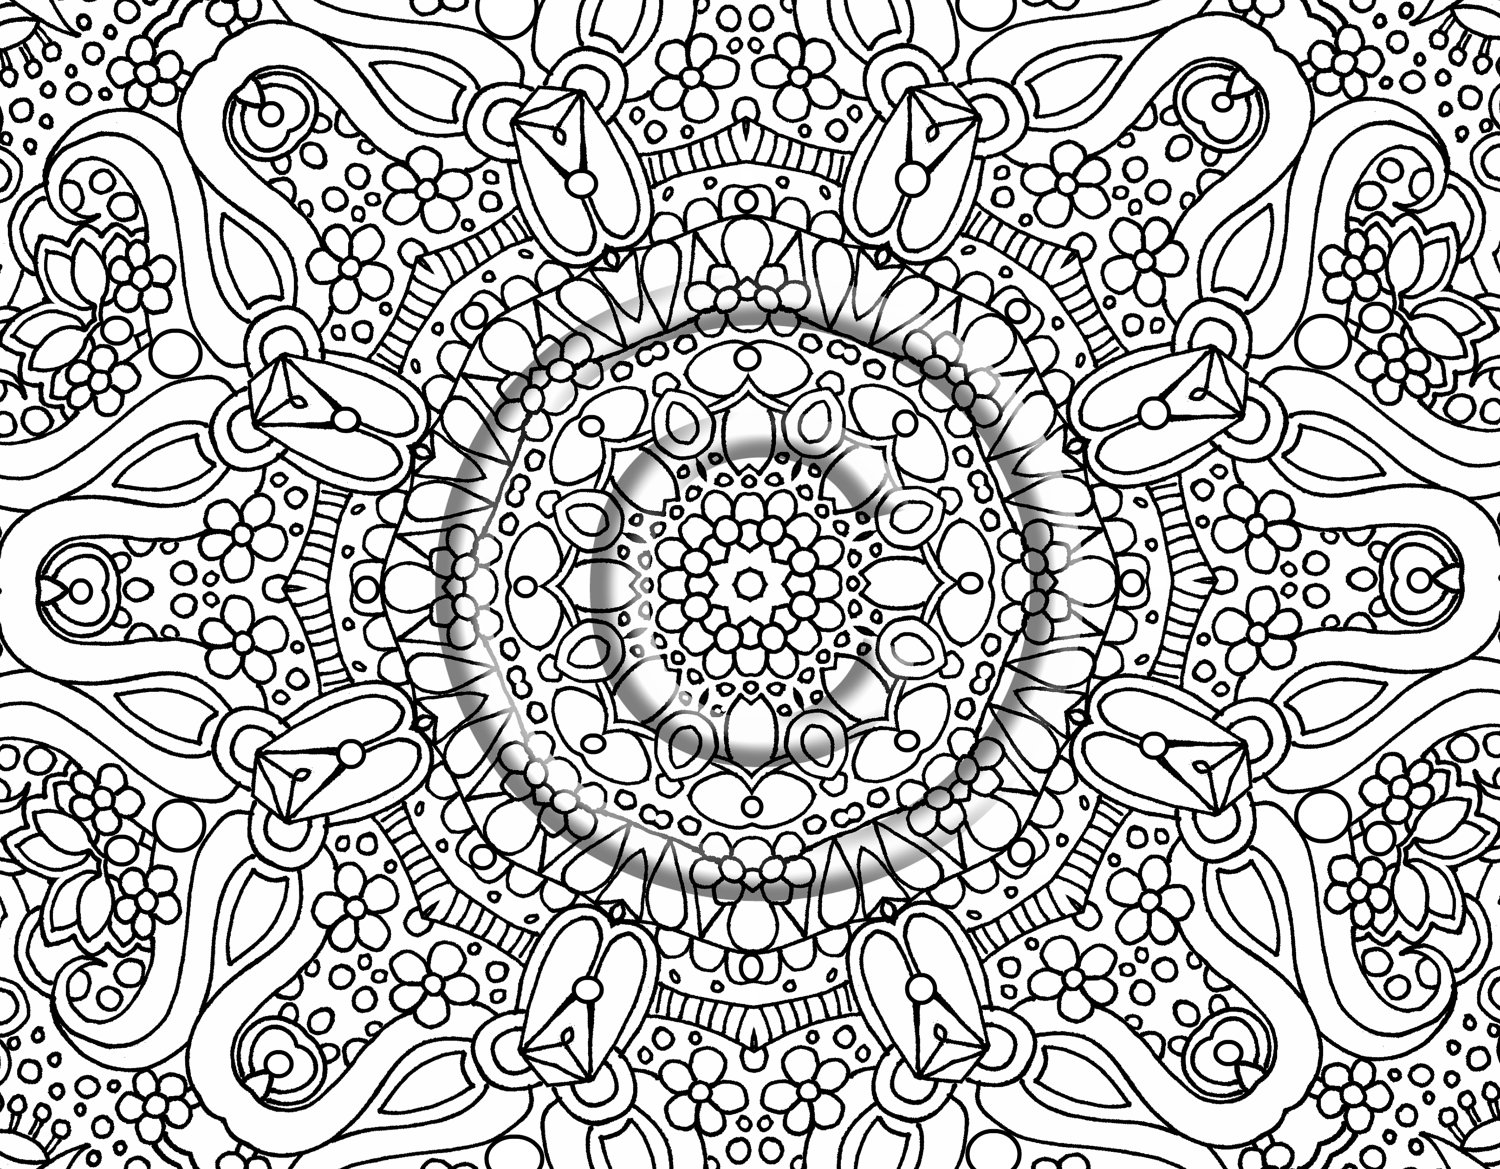 detailed coloring sheets free detailed coloring pages for older kids coloring home sheets detailed coloring